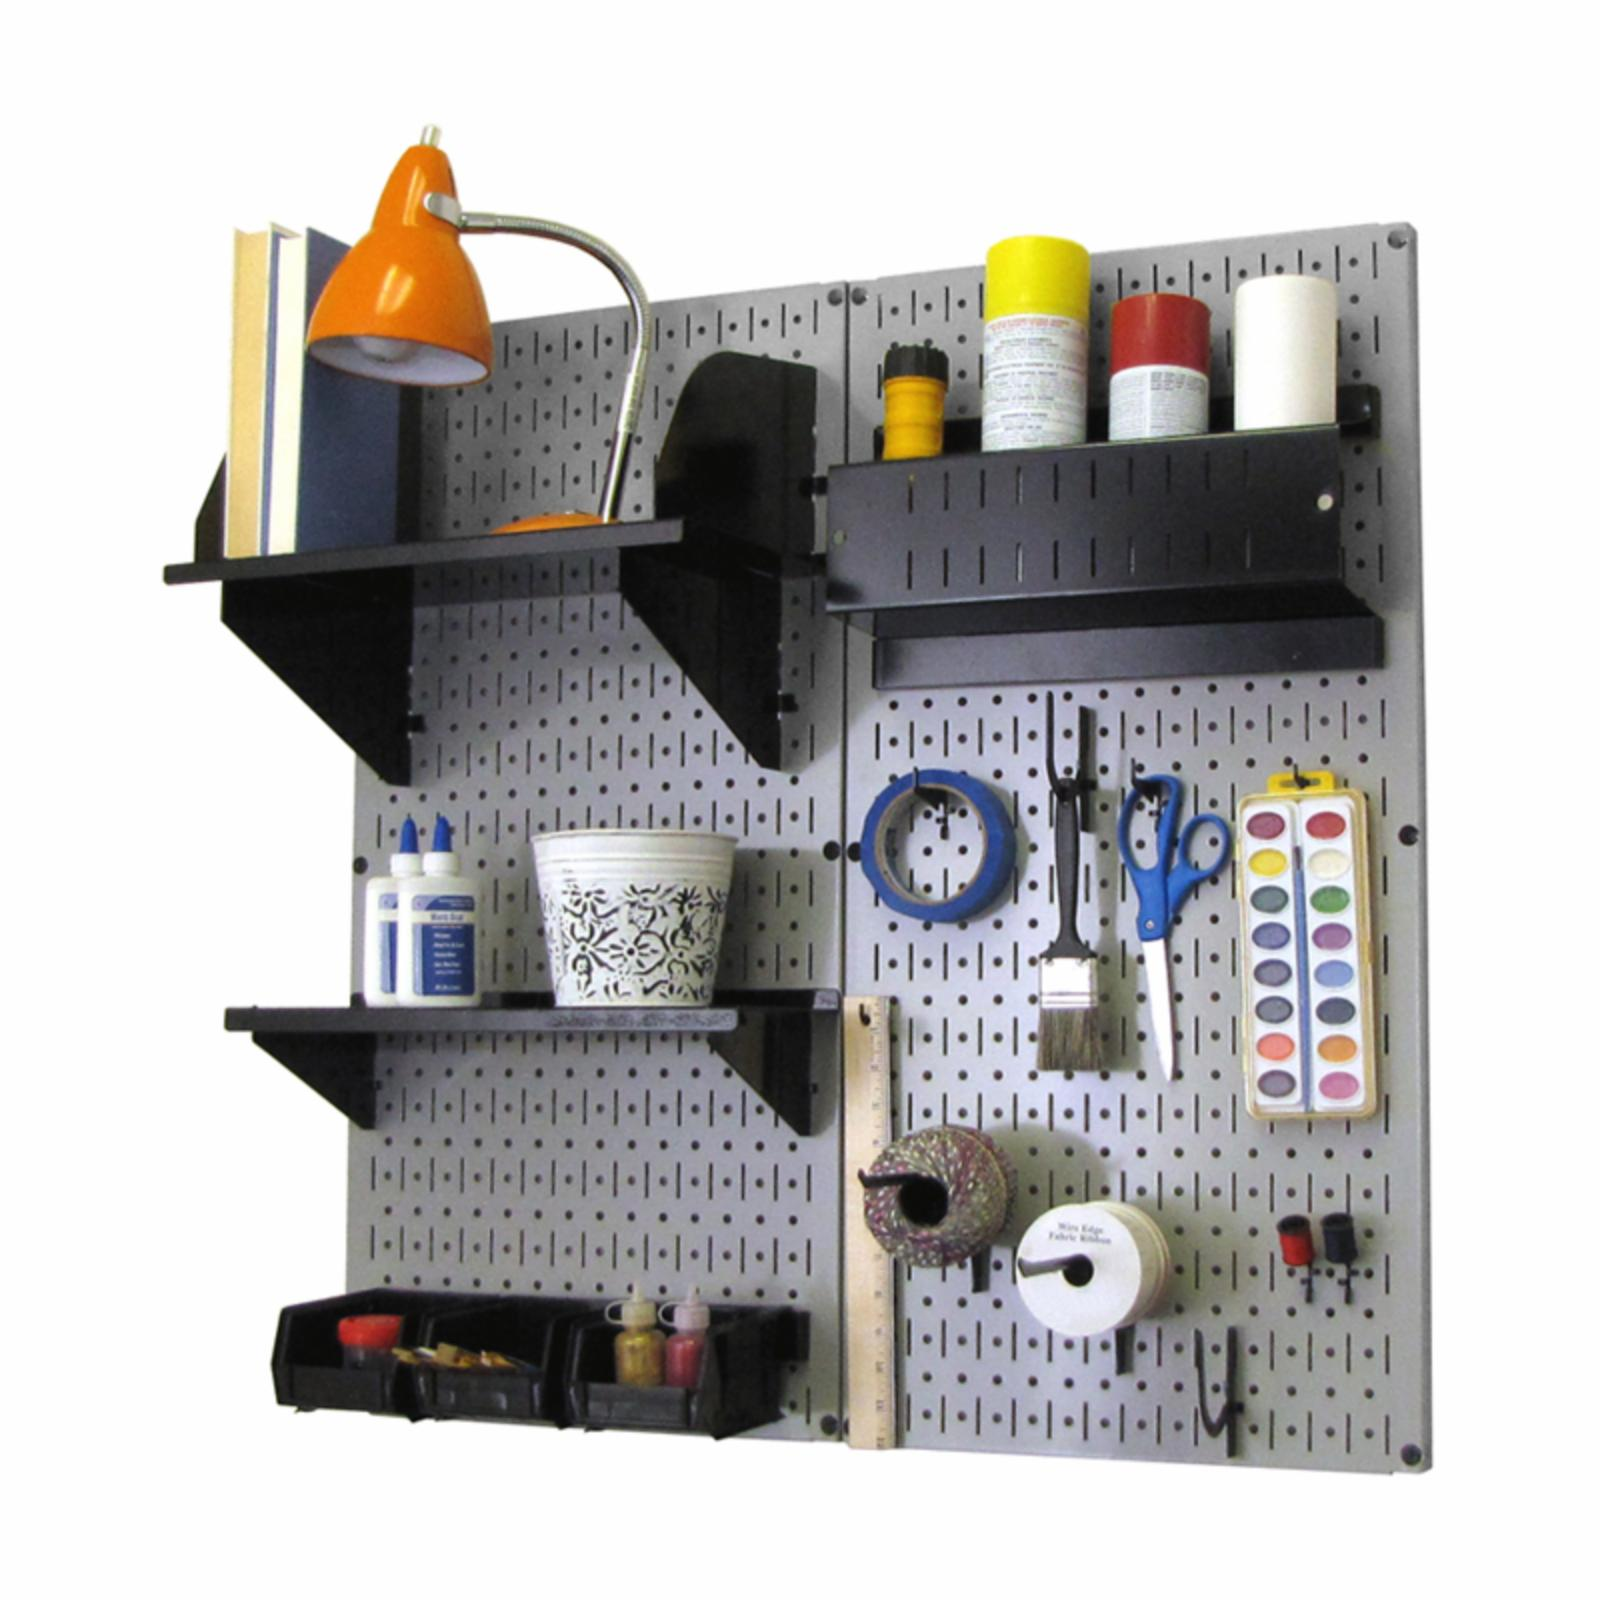 Wall Control Pegboard Hobby Craft Pegboard Organizer Storage Kit - Gray Gray with Black Accessories - 30-CC-200 GB